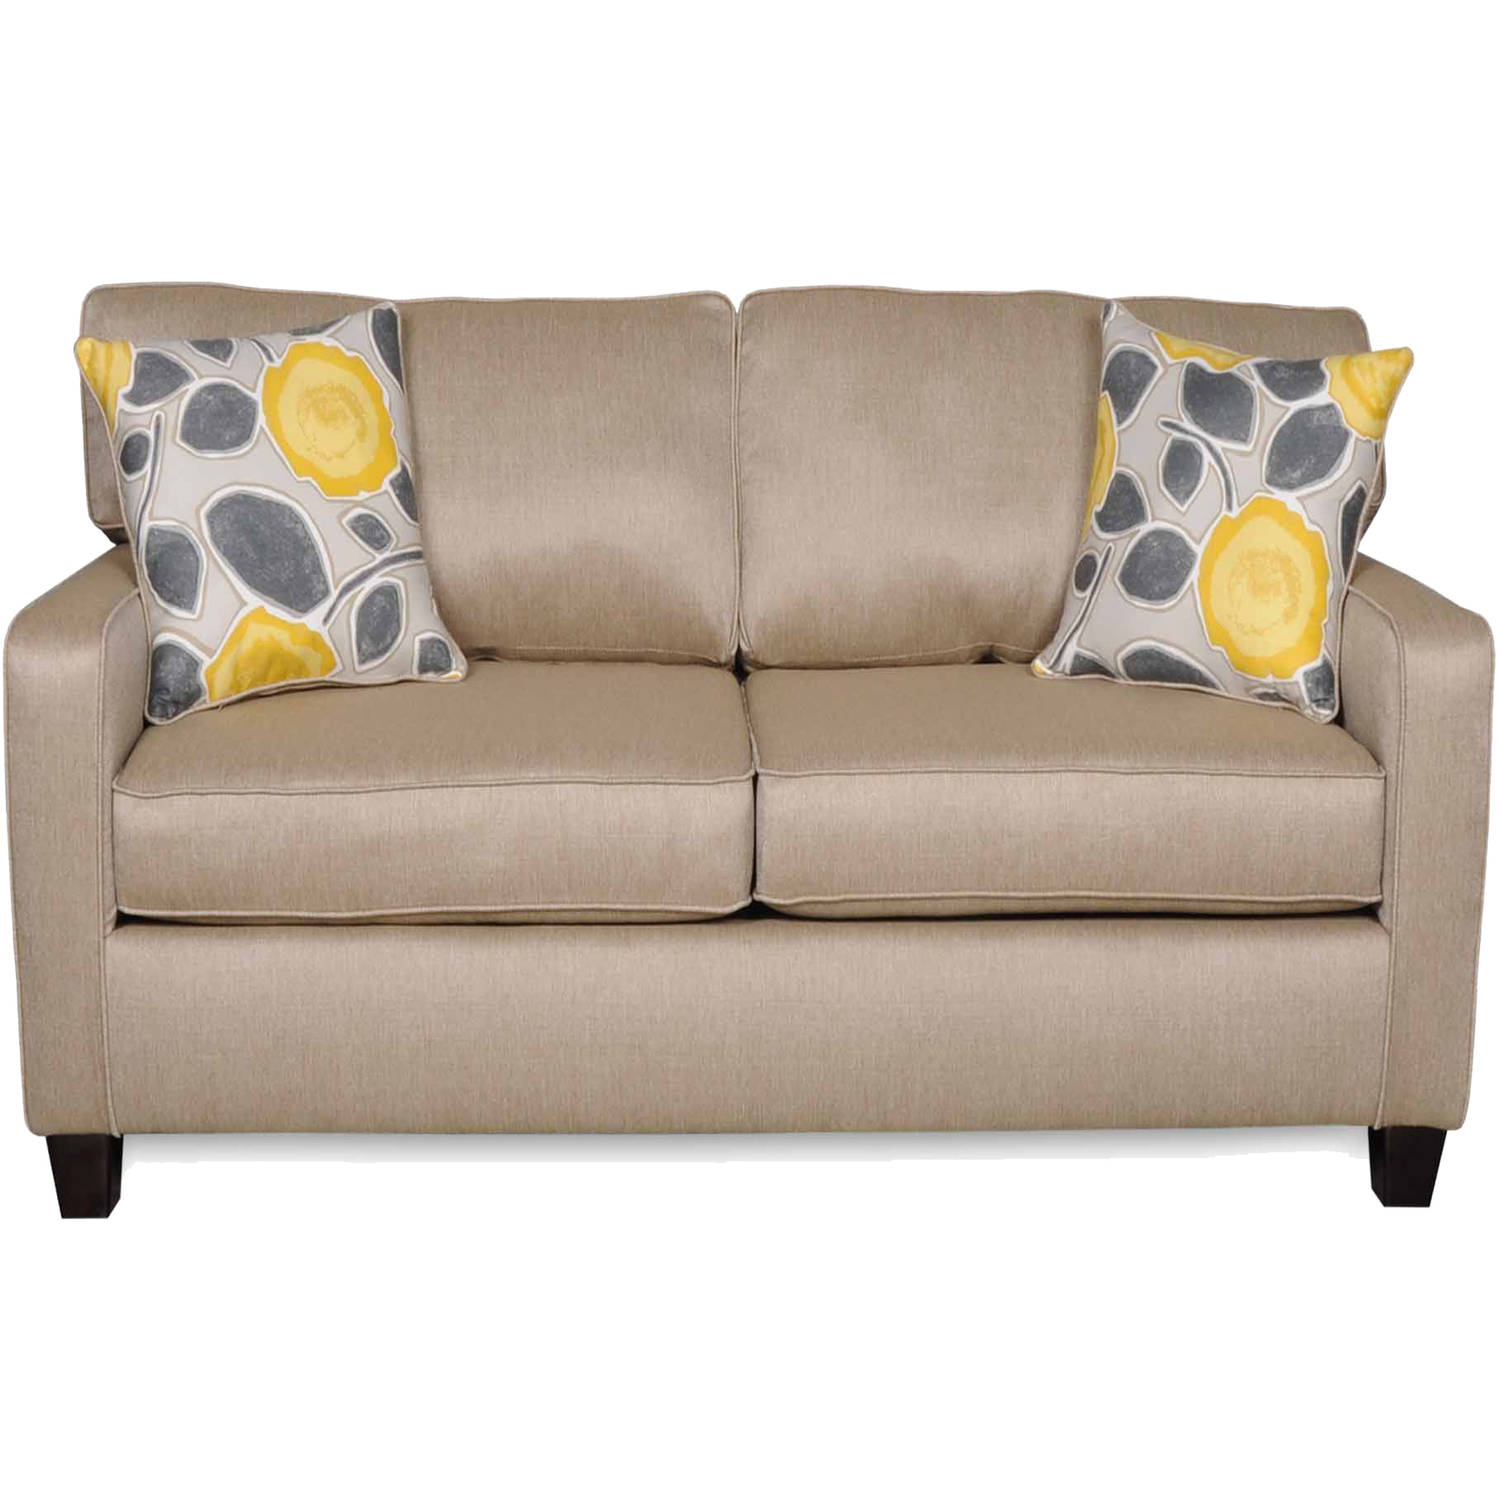 SoFab Darcey Beige Love Seat with 2 Reversible Accent Pillows